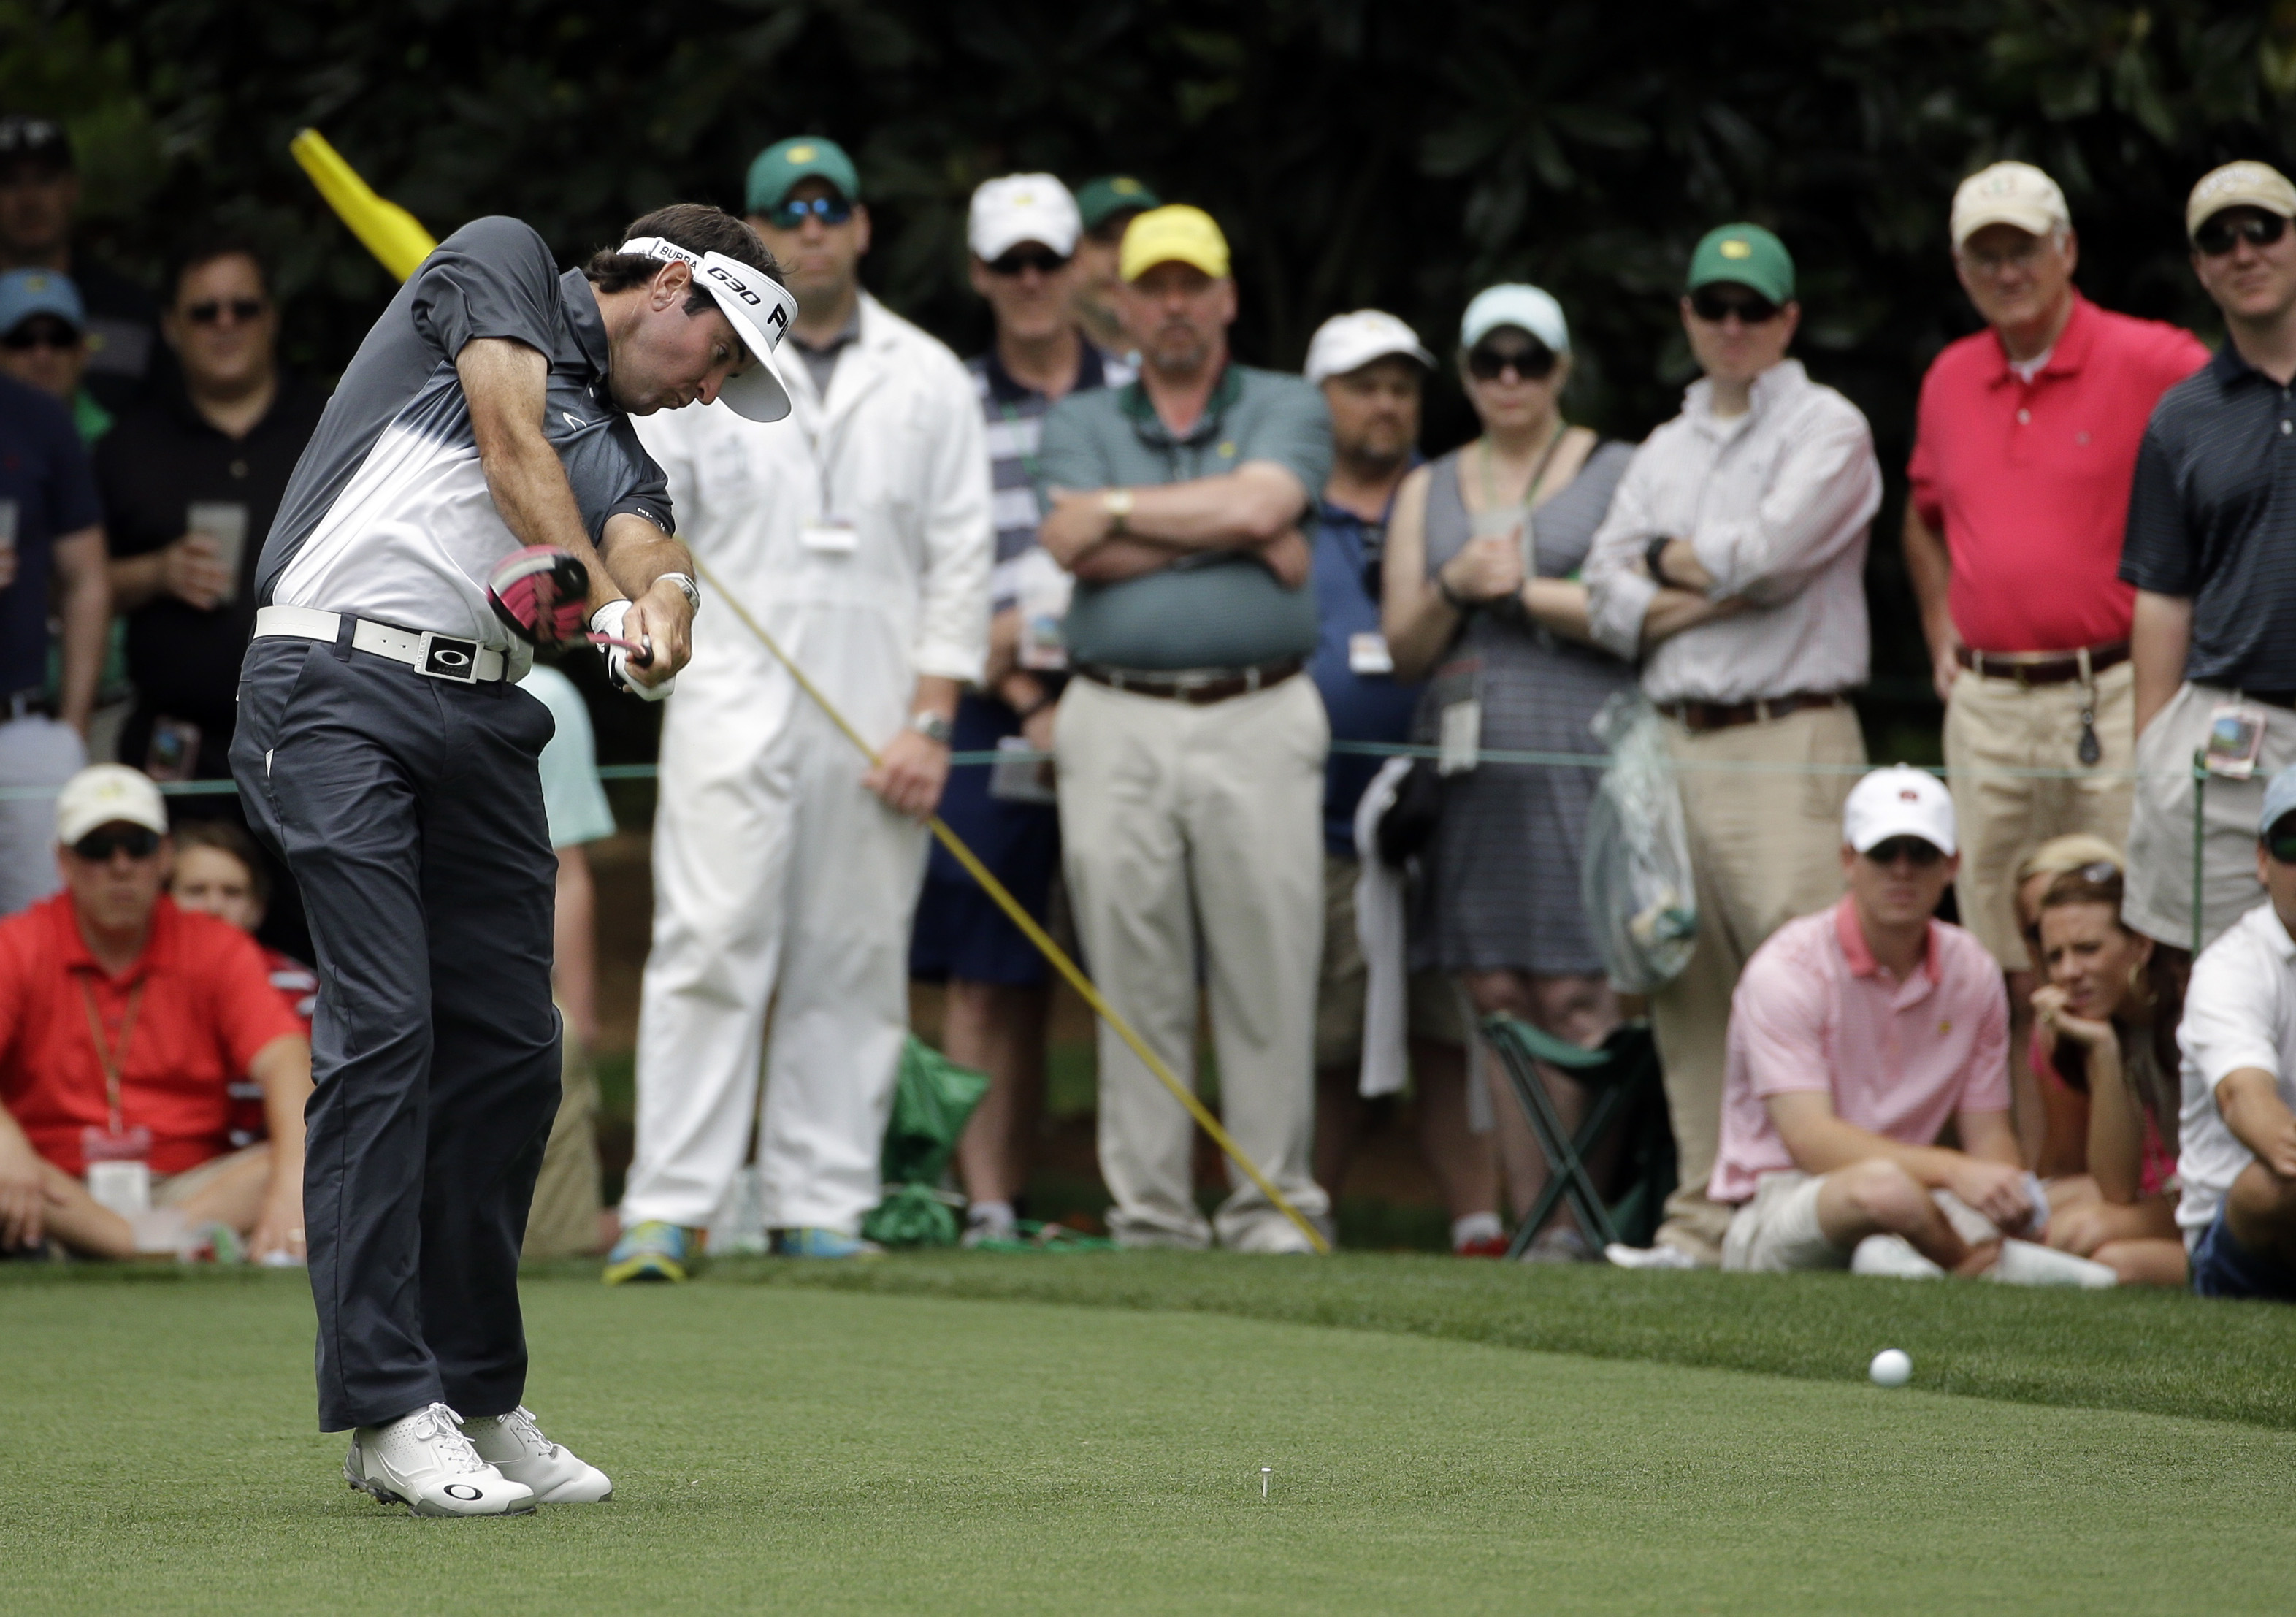 Bubba Watson tees off on the seventh hole during the fourth round of the Masters golf tournament Sunday, April 12, 2015, in Augusta, Ga. (AP Photo/Matt